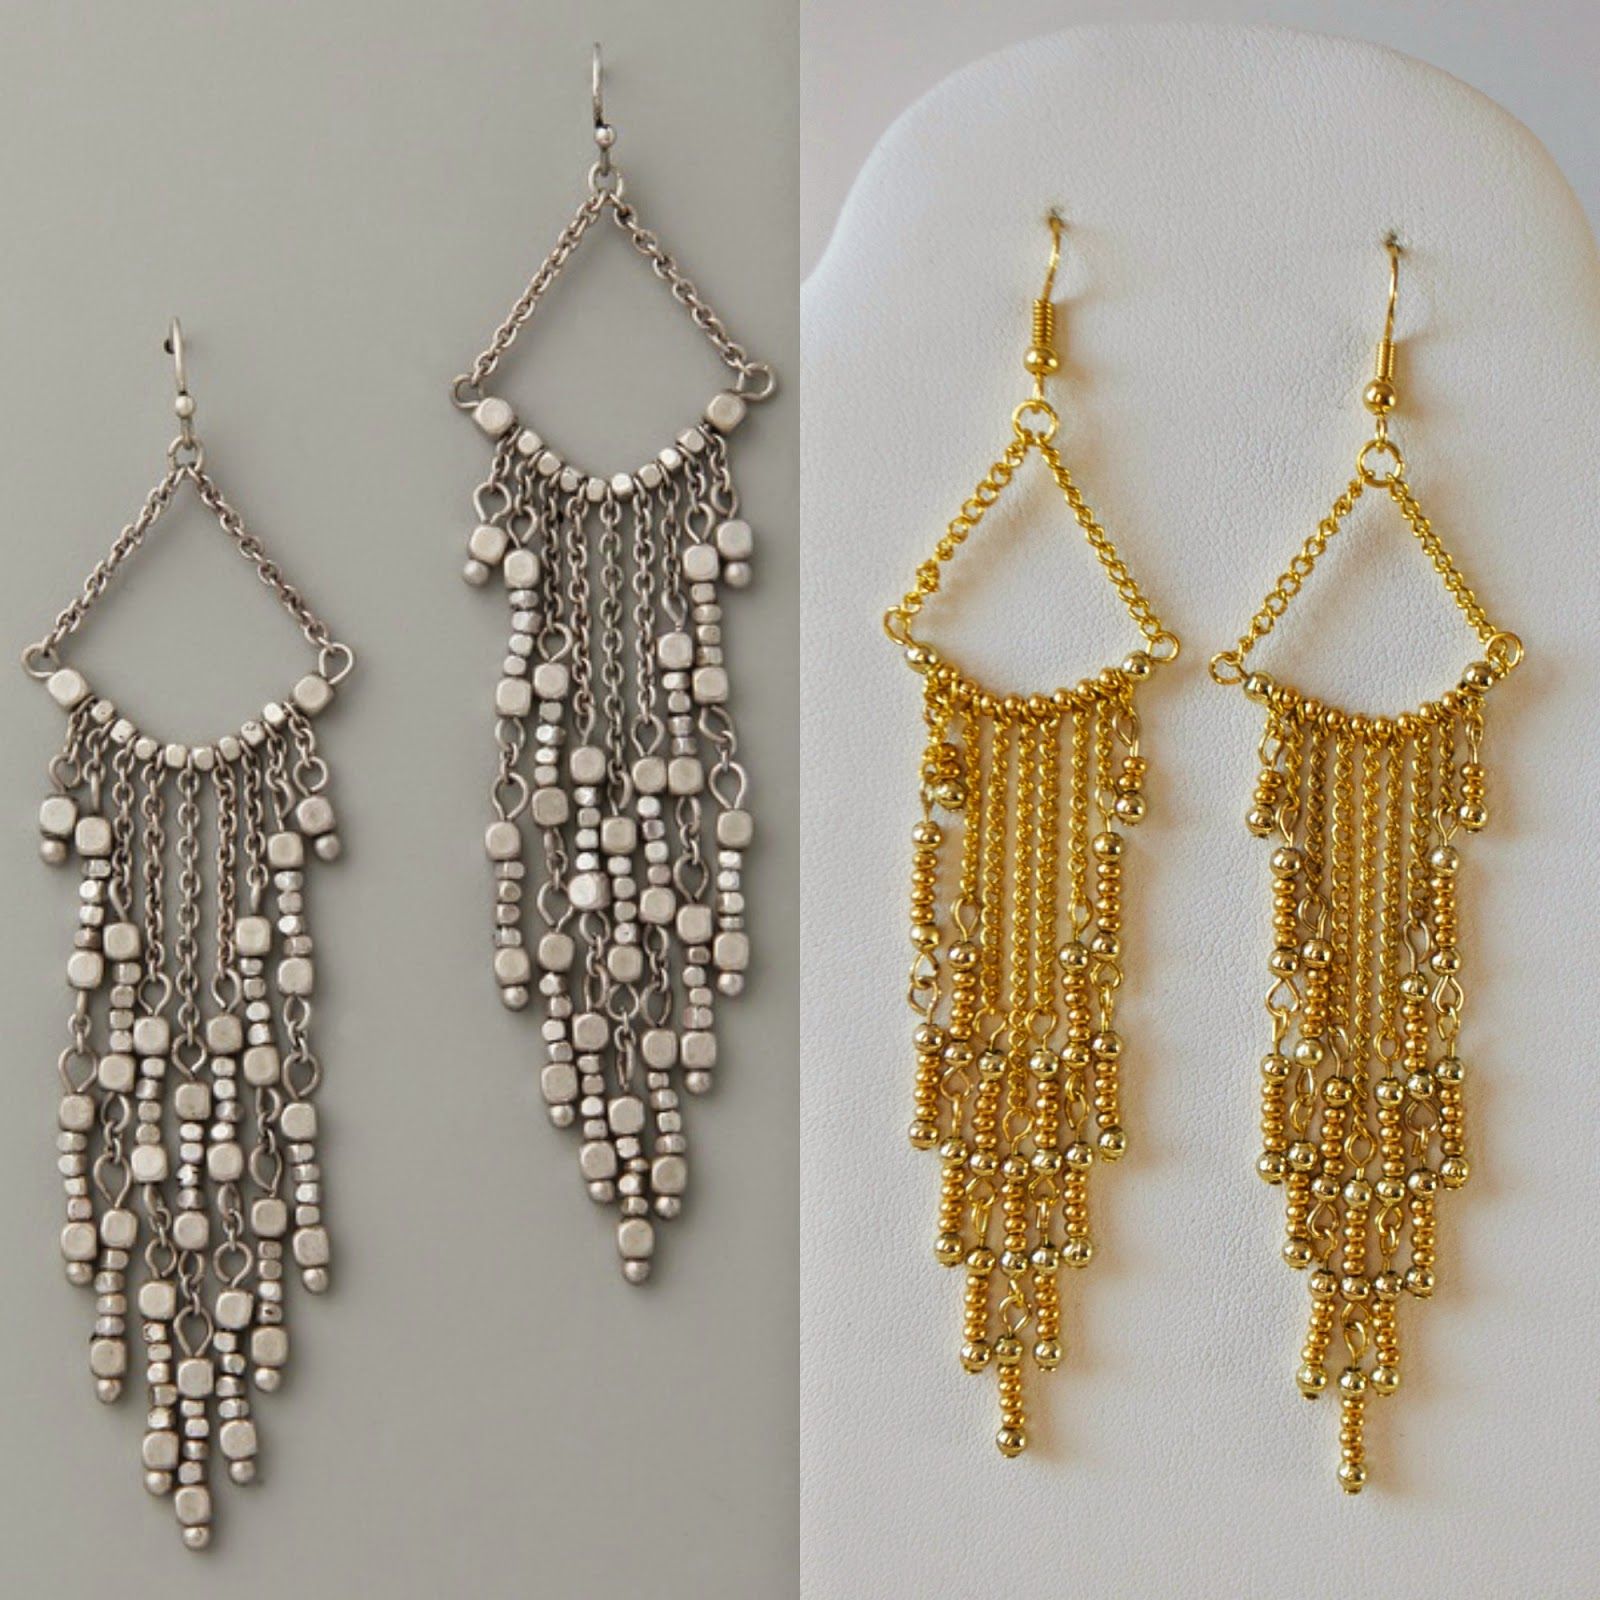 DIY Gold Chandelier Earrings My Girlish Whims